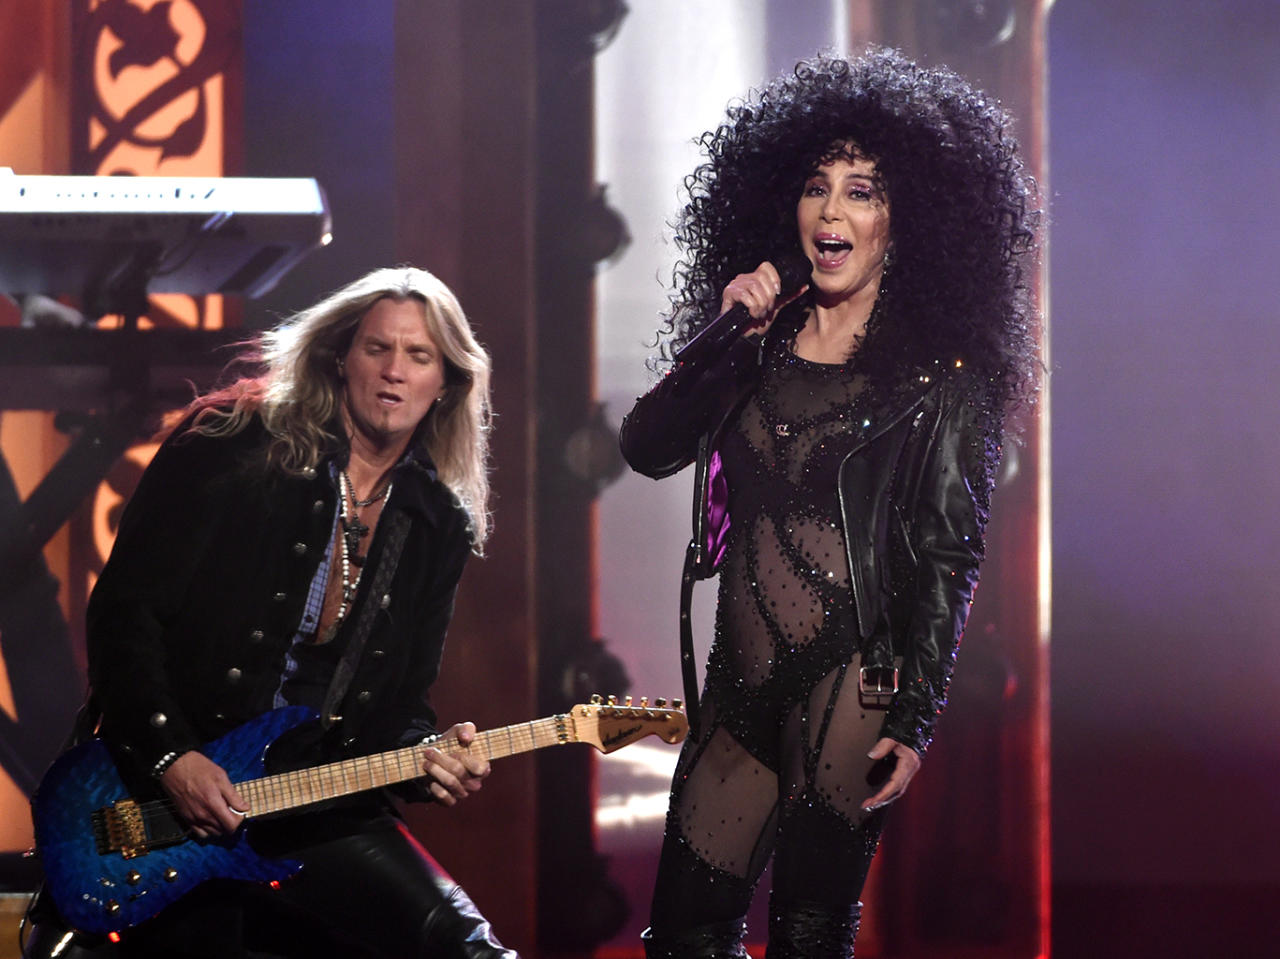 <p>Cher performs at the Billboard Music Awards at the T-Mobile Arena on Sunday, May 21, 2017, in Las Vegas. (Photo by Chris Pizzello/Invision/AP) </p>